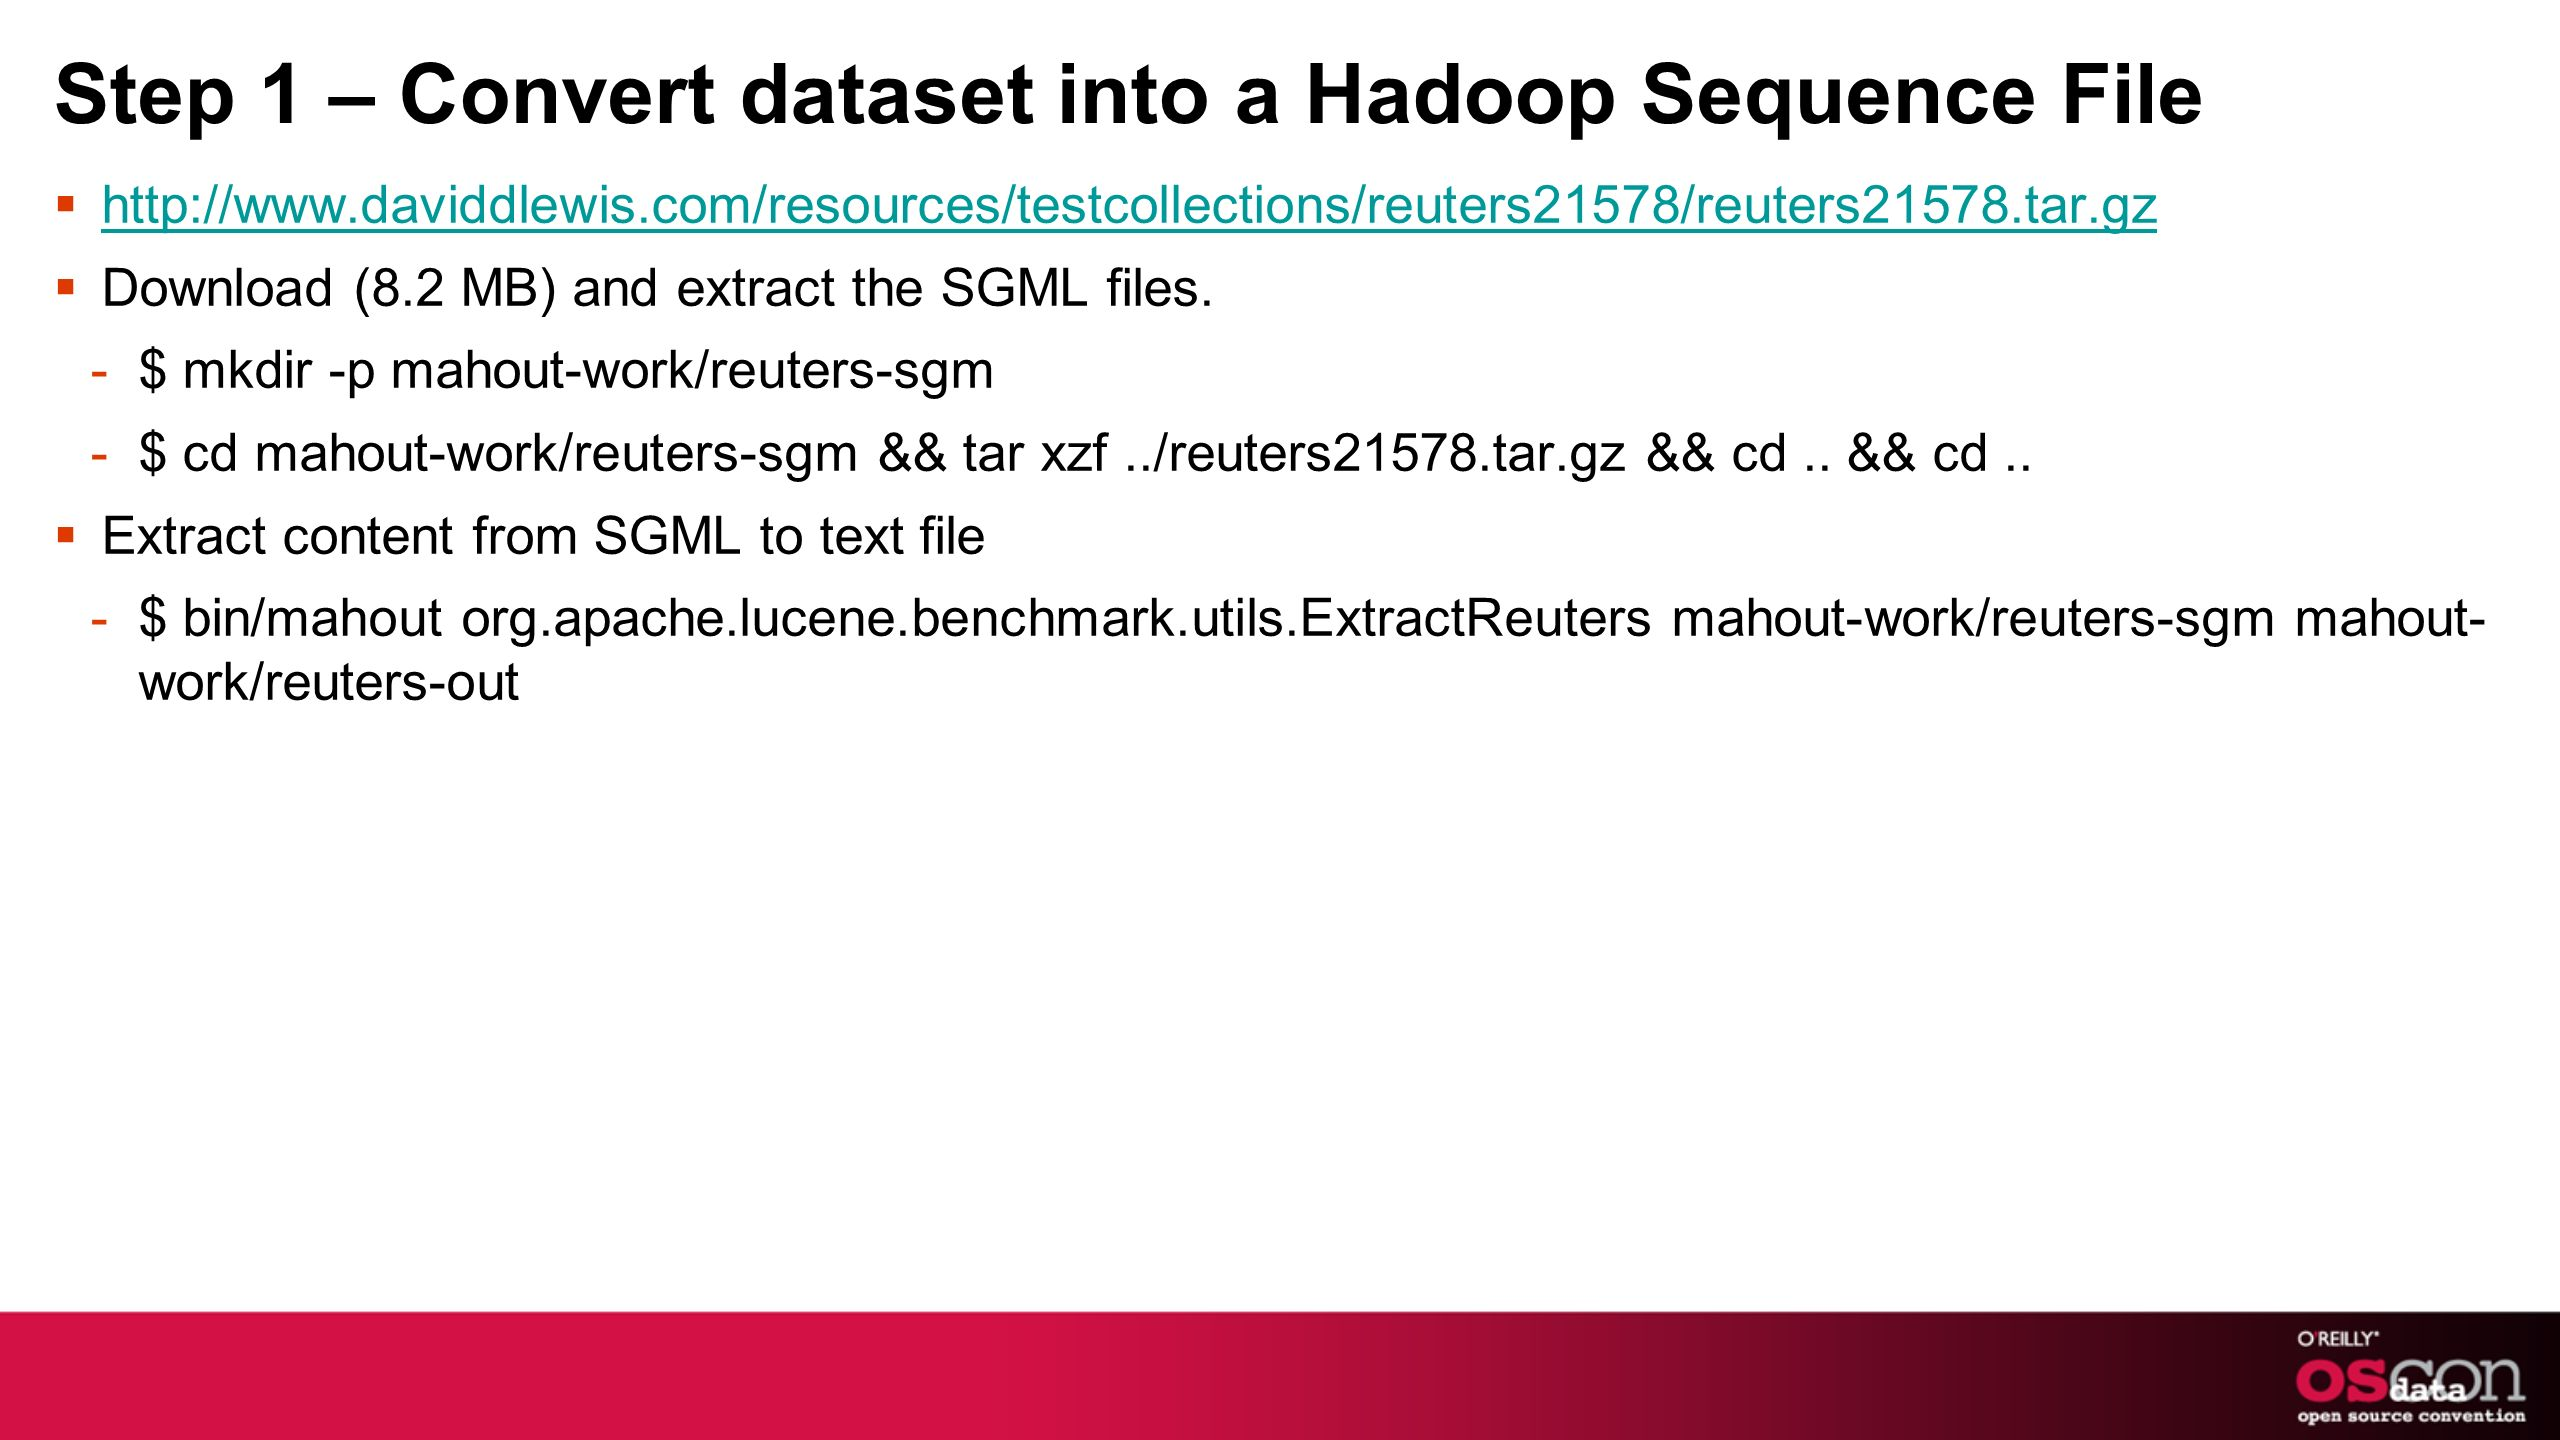 Step 1 – Convert dataset into a Hadoop Sequence File http://www.daviddlewis.com/resources/testcollections/reuters21578/reuters21578.tar.gz Download (8.2 MB) and extract the SGML files.